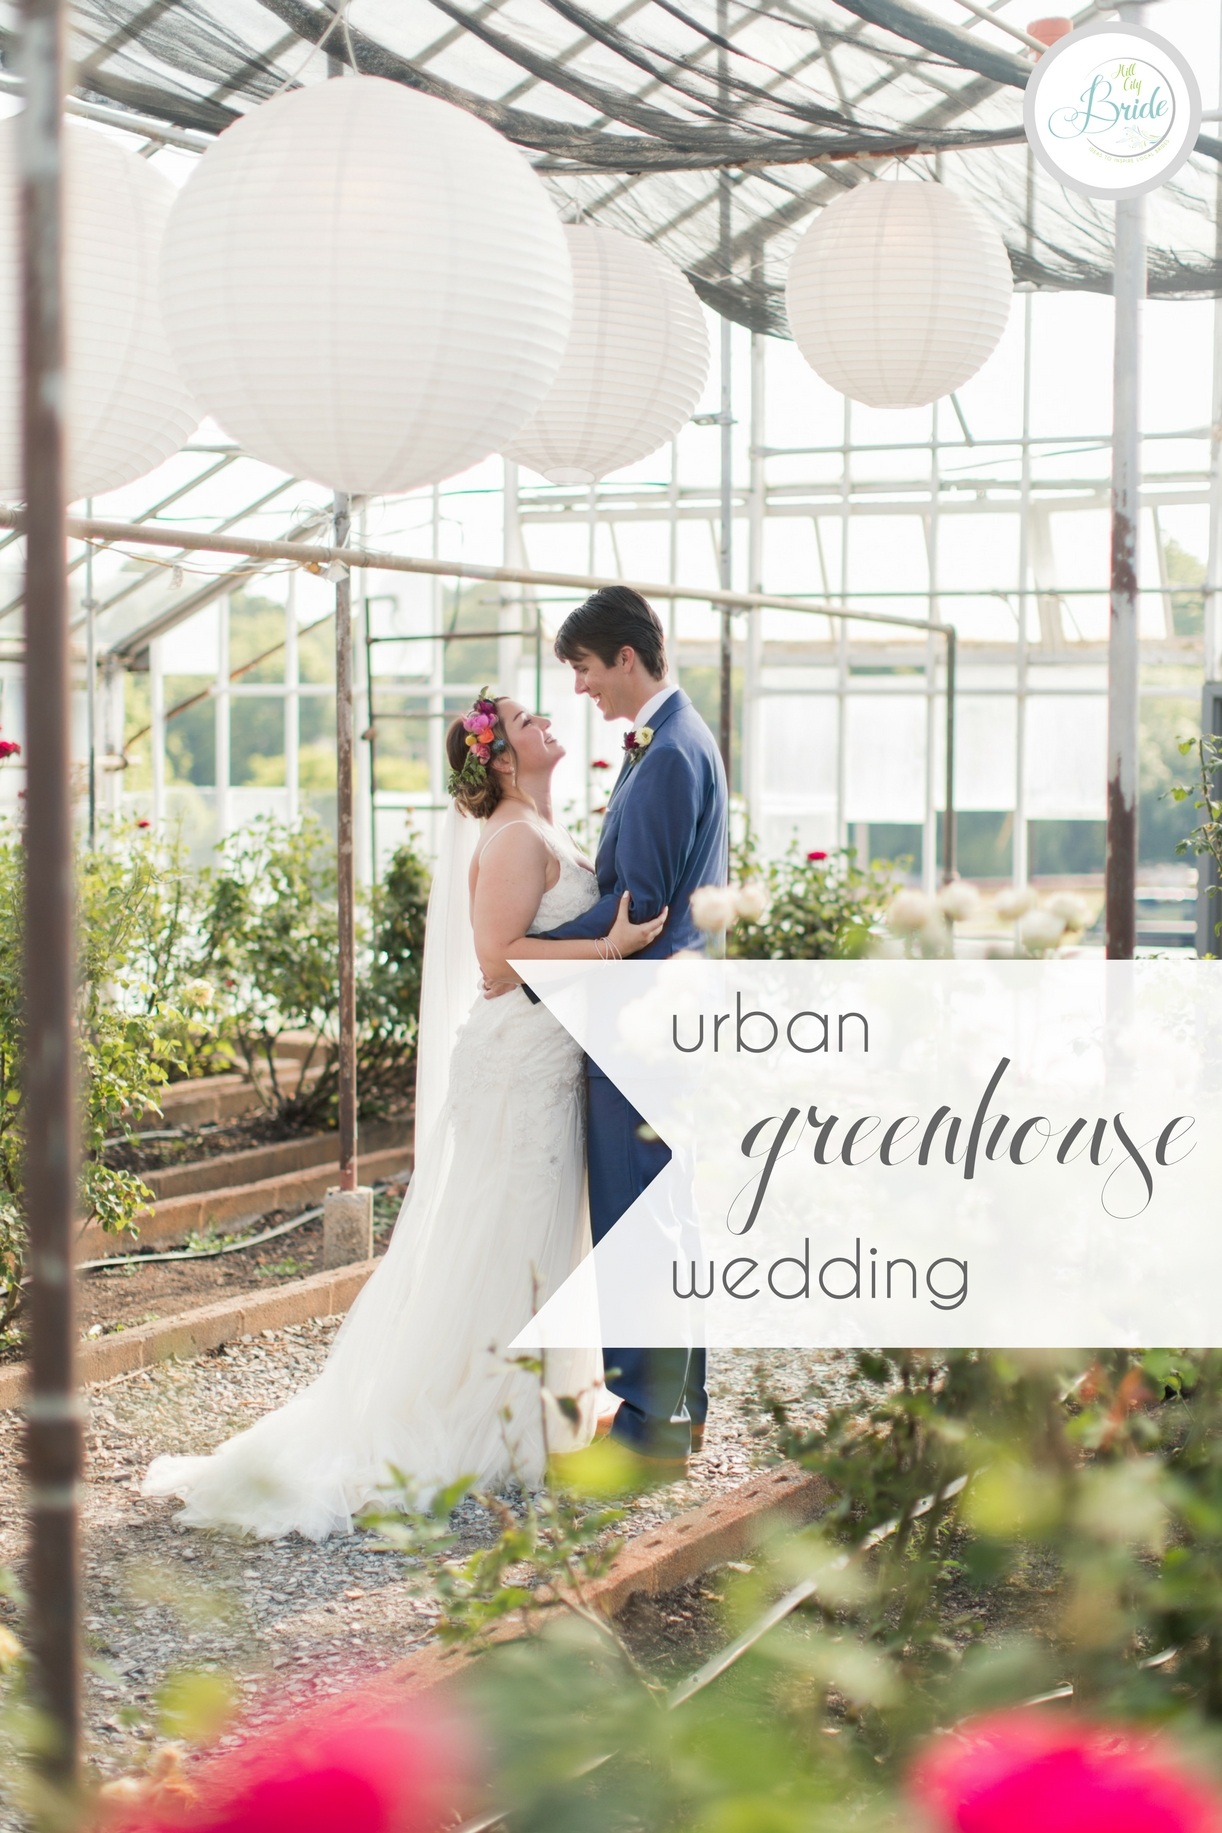 Urban Greenhouse Wedding DIY Farm | Hill City Bride Virginia Wedding Blog